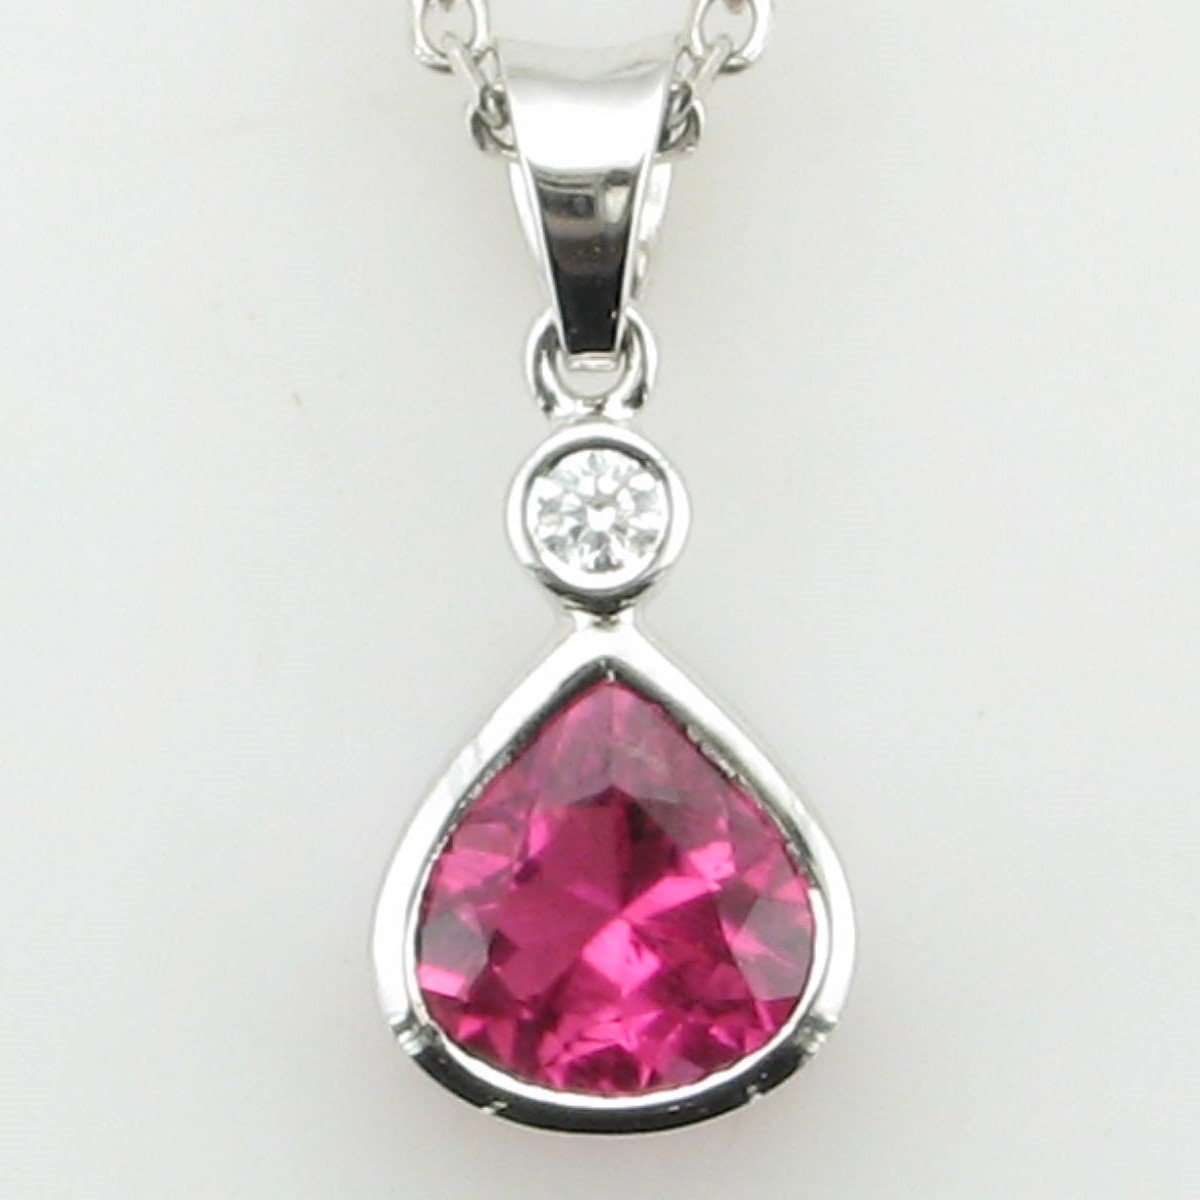 18K White Gold Designer Pear Pink Tourmaline and Diamond Pendant